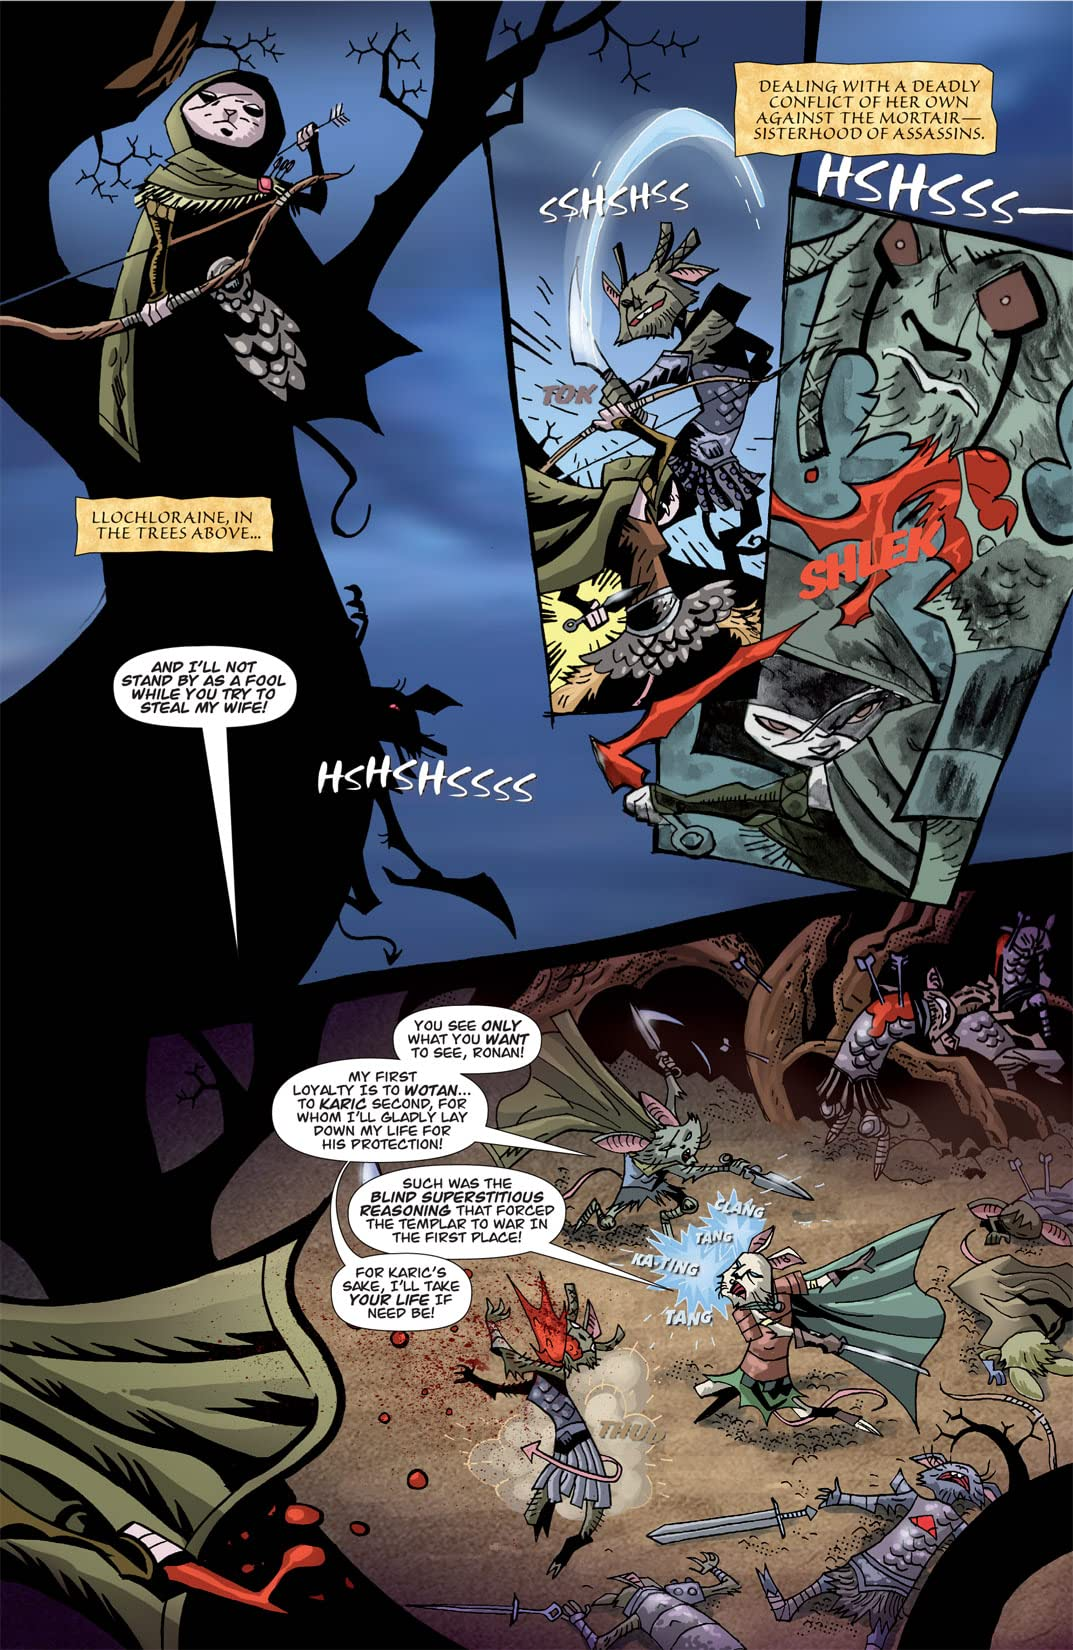 The Mice Templar Vol. 3 #2